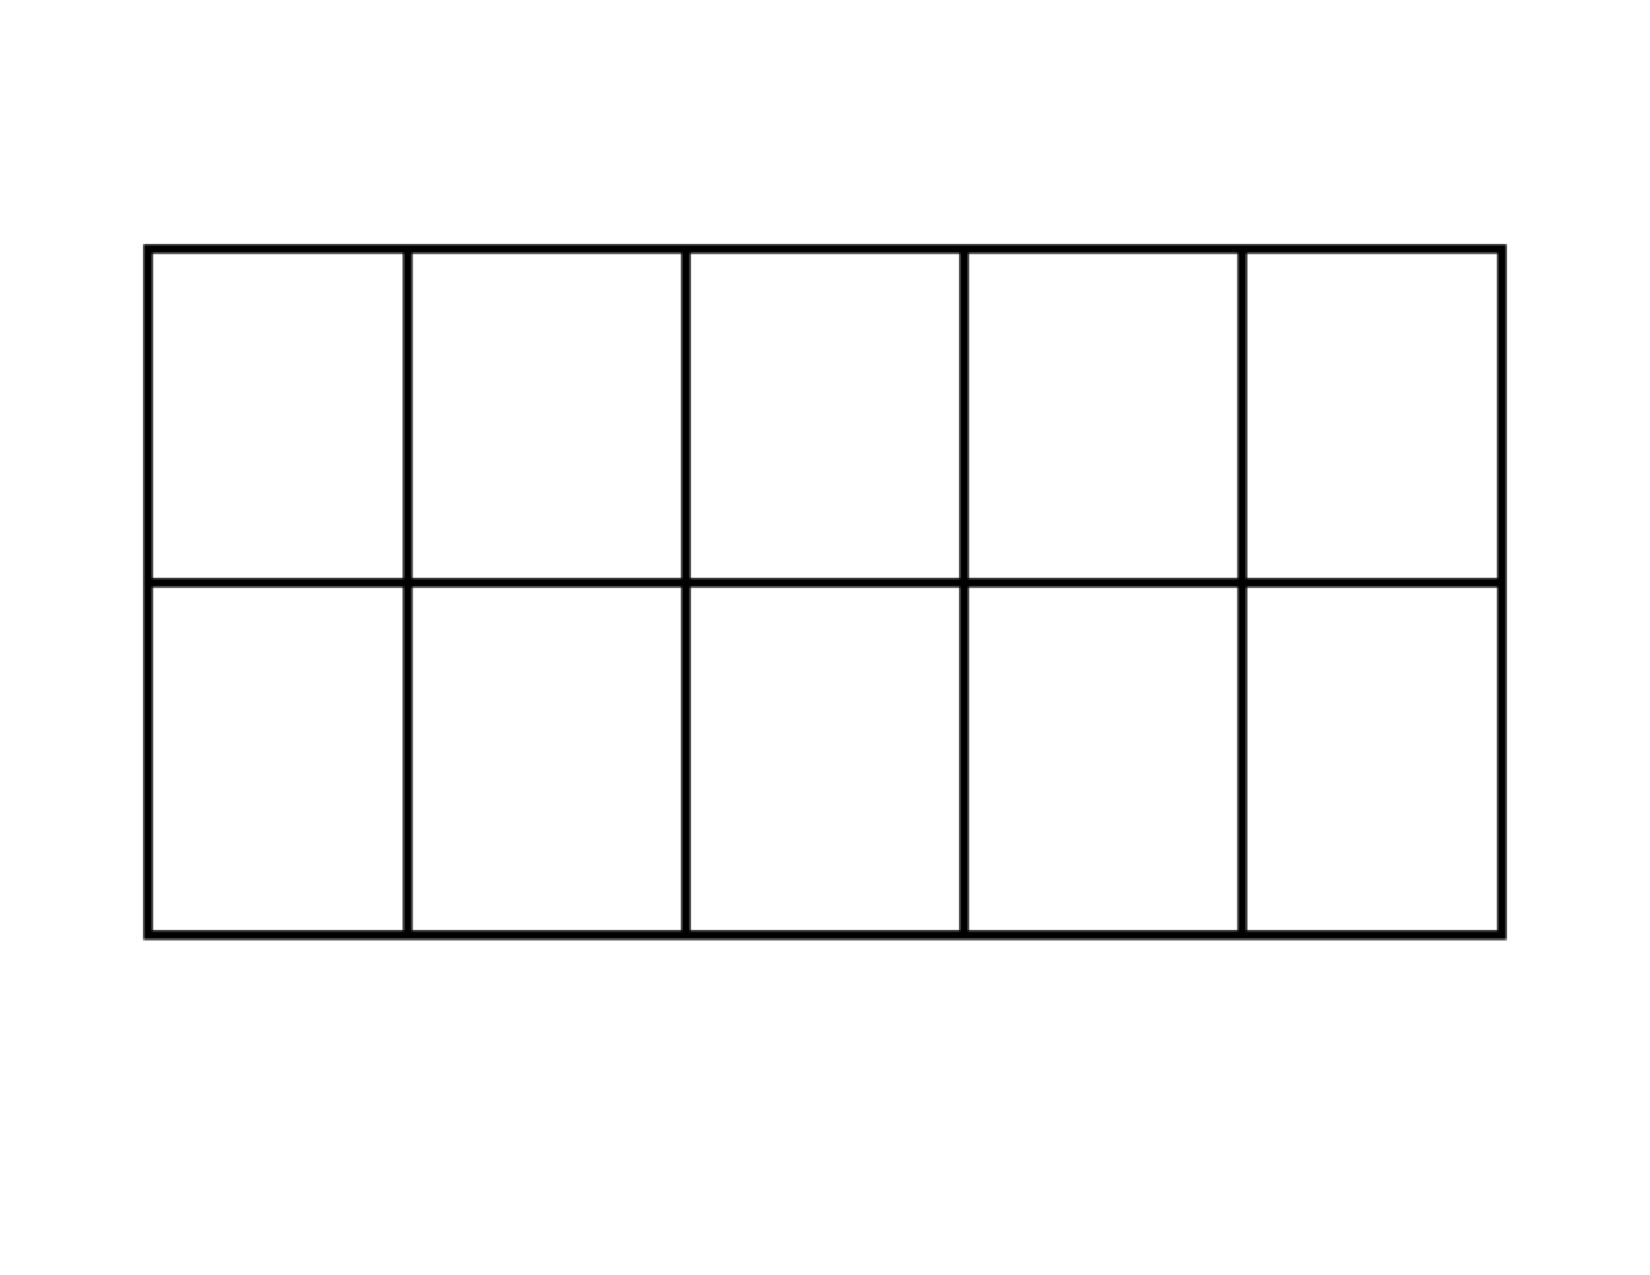 The 10 Frame Bakery Kindergarten Math Activity Aligned With The Common Core